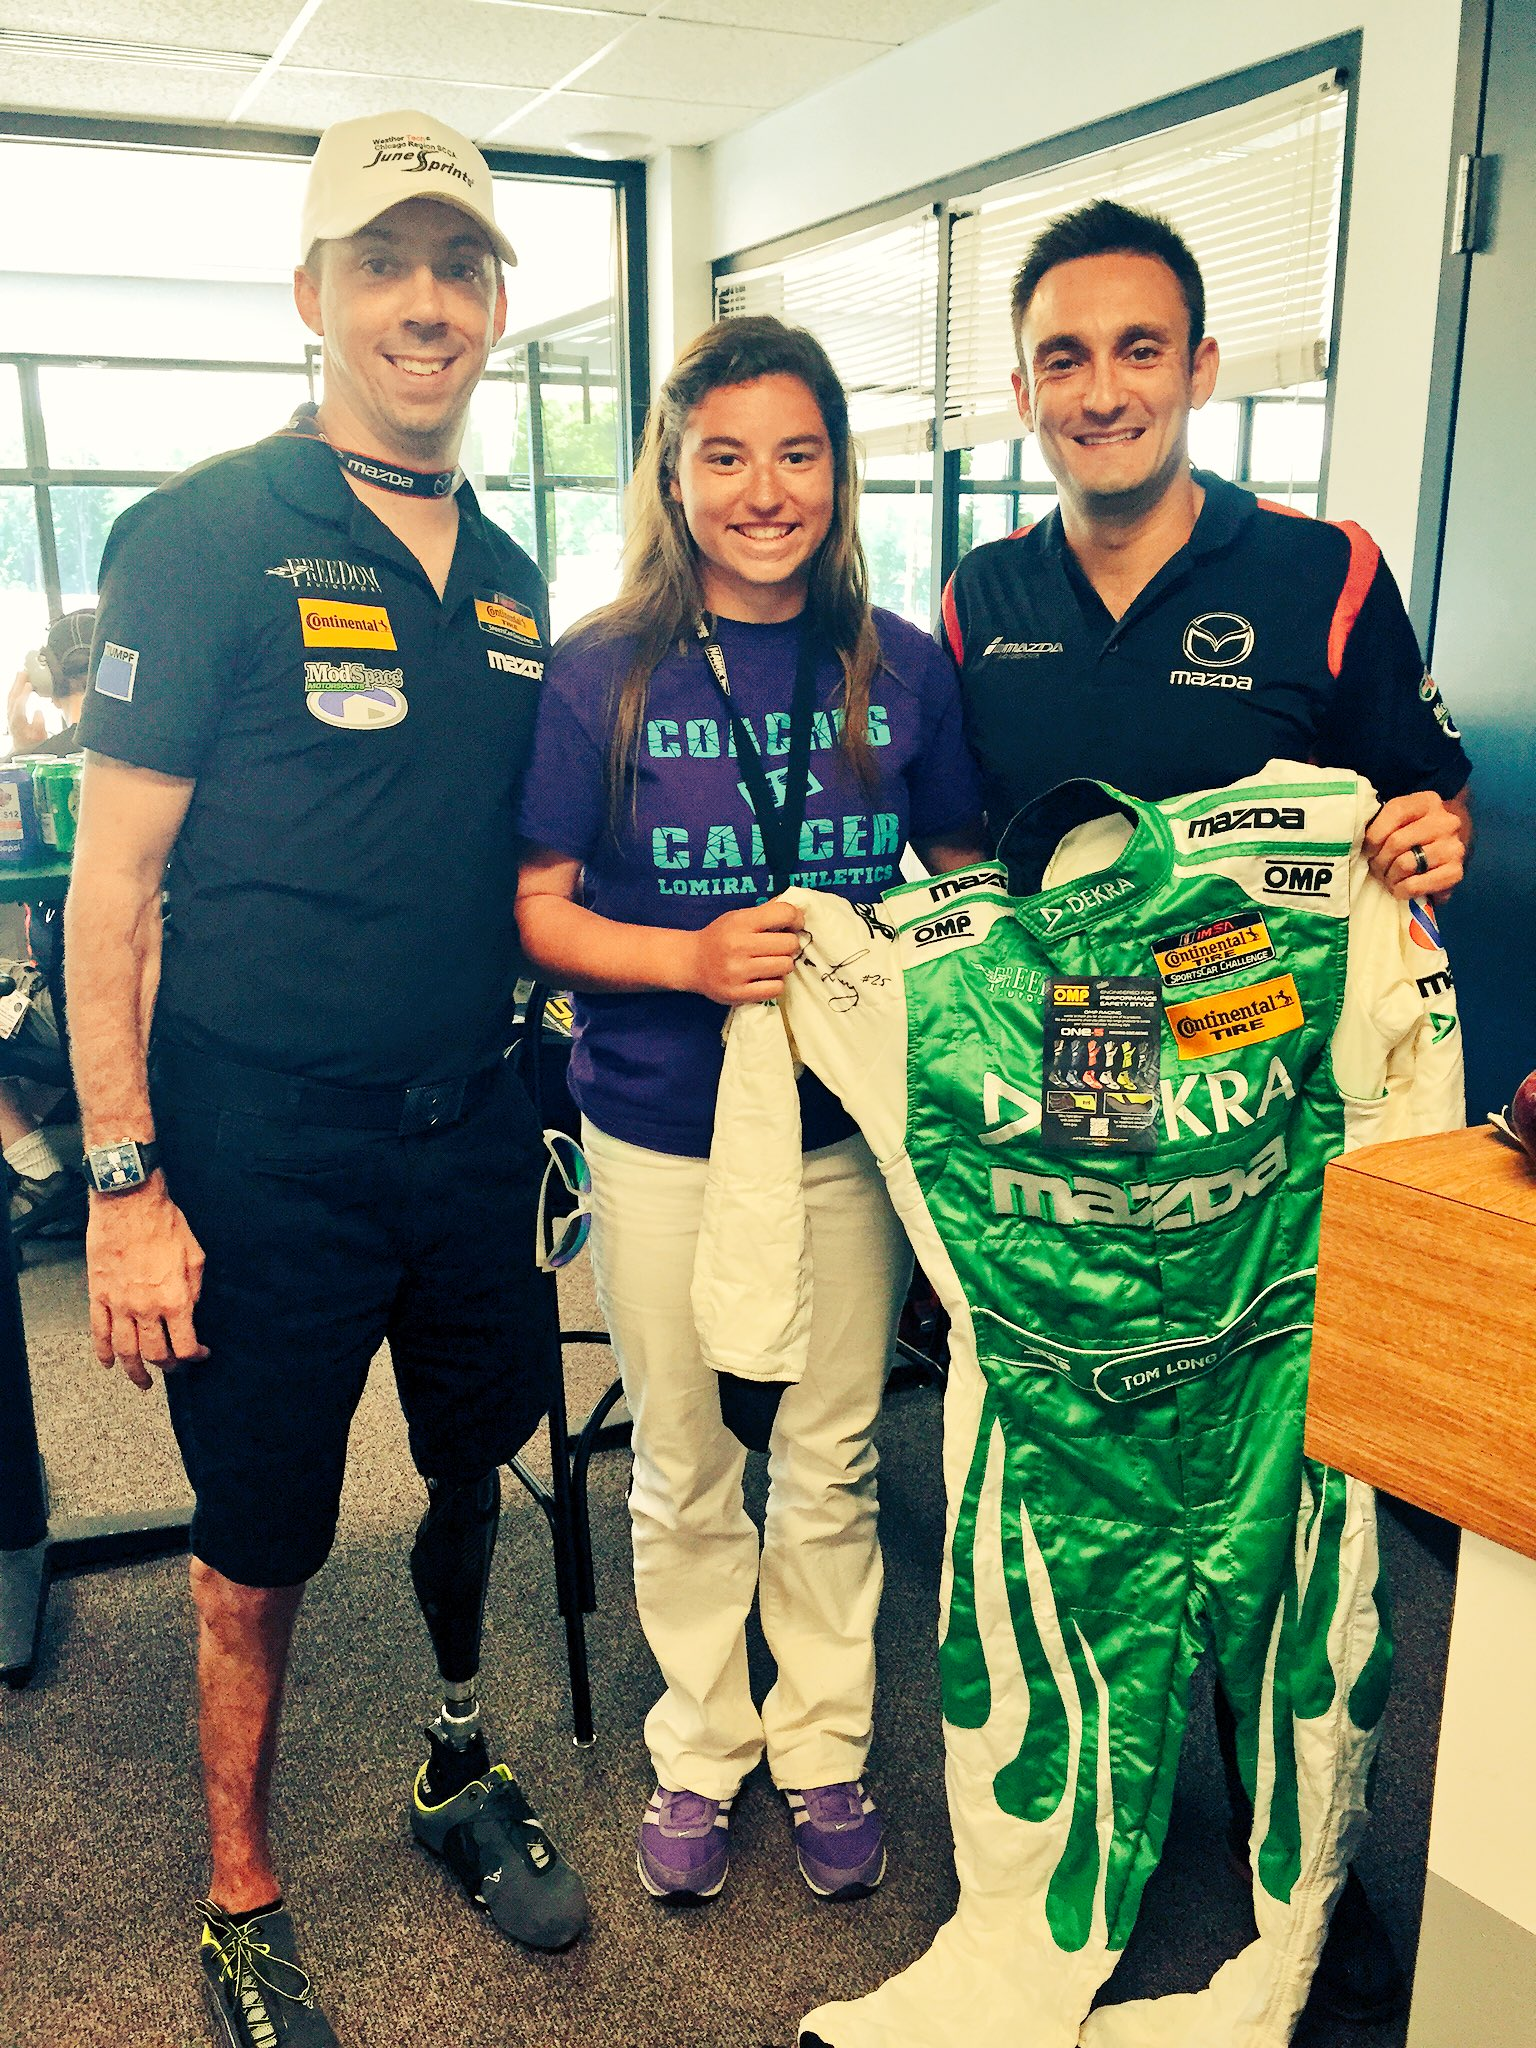 Liam Dwyer was on hand for the Chicago SCCA corner workers raffle.